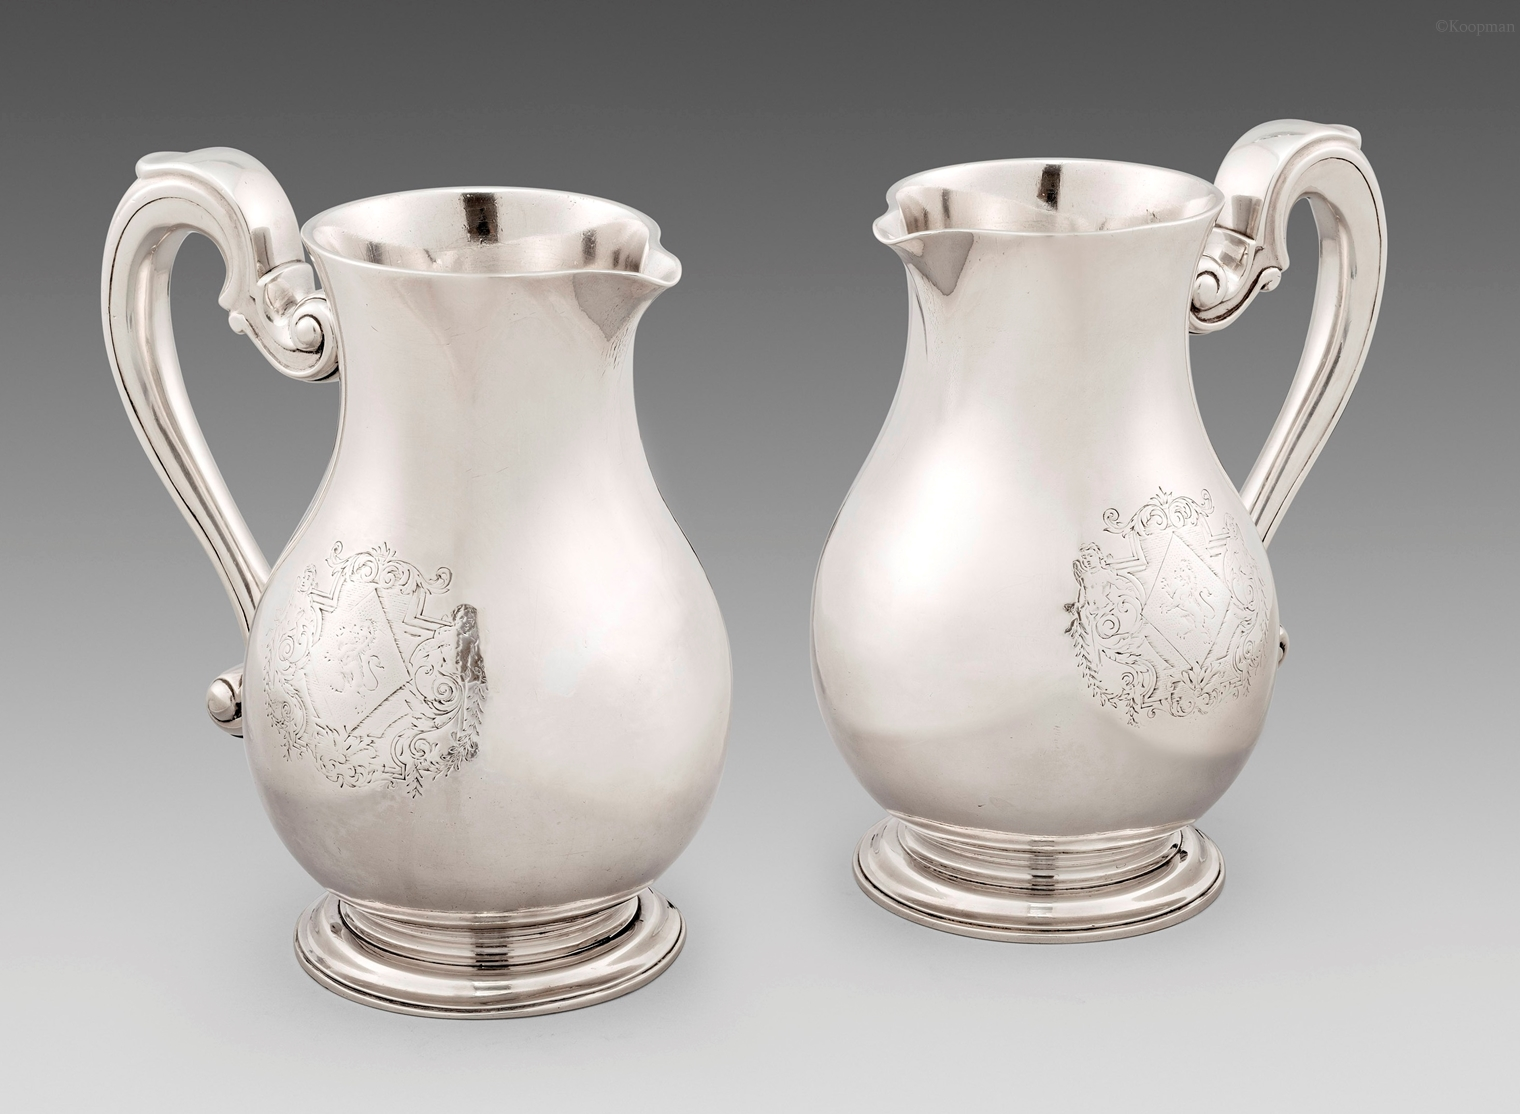 An Extremely Rare Pair of George I Beer Jugs